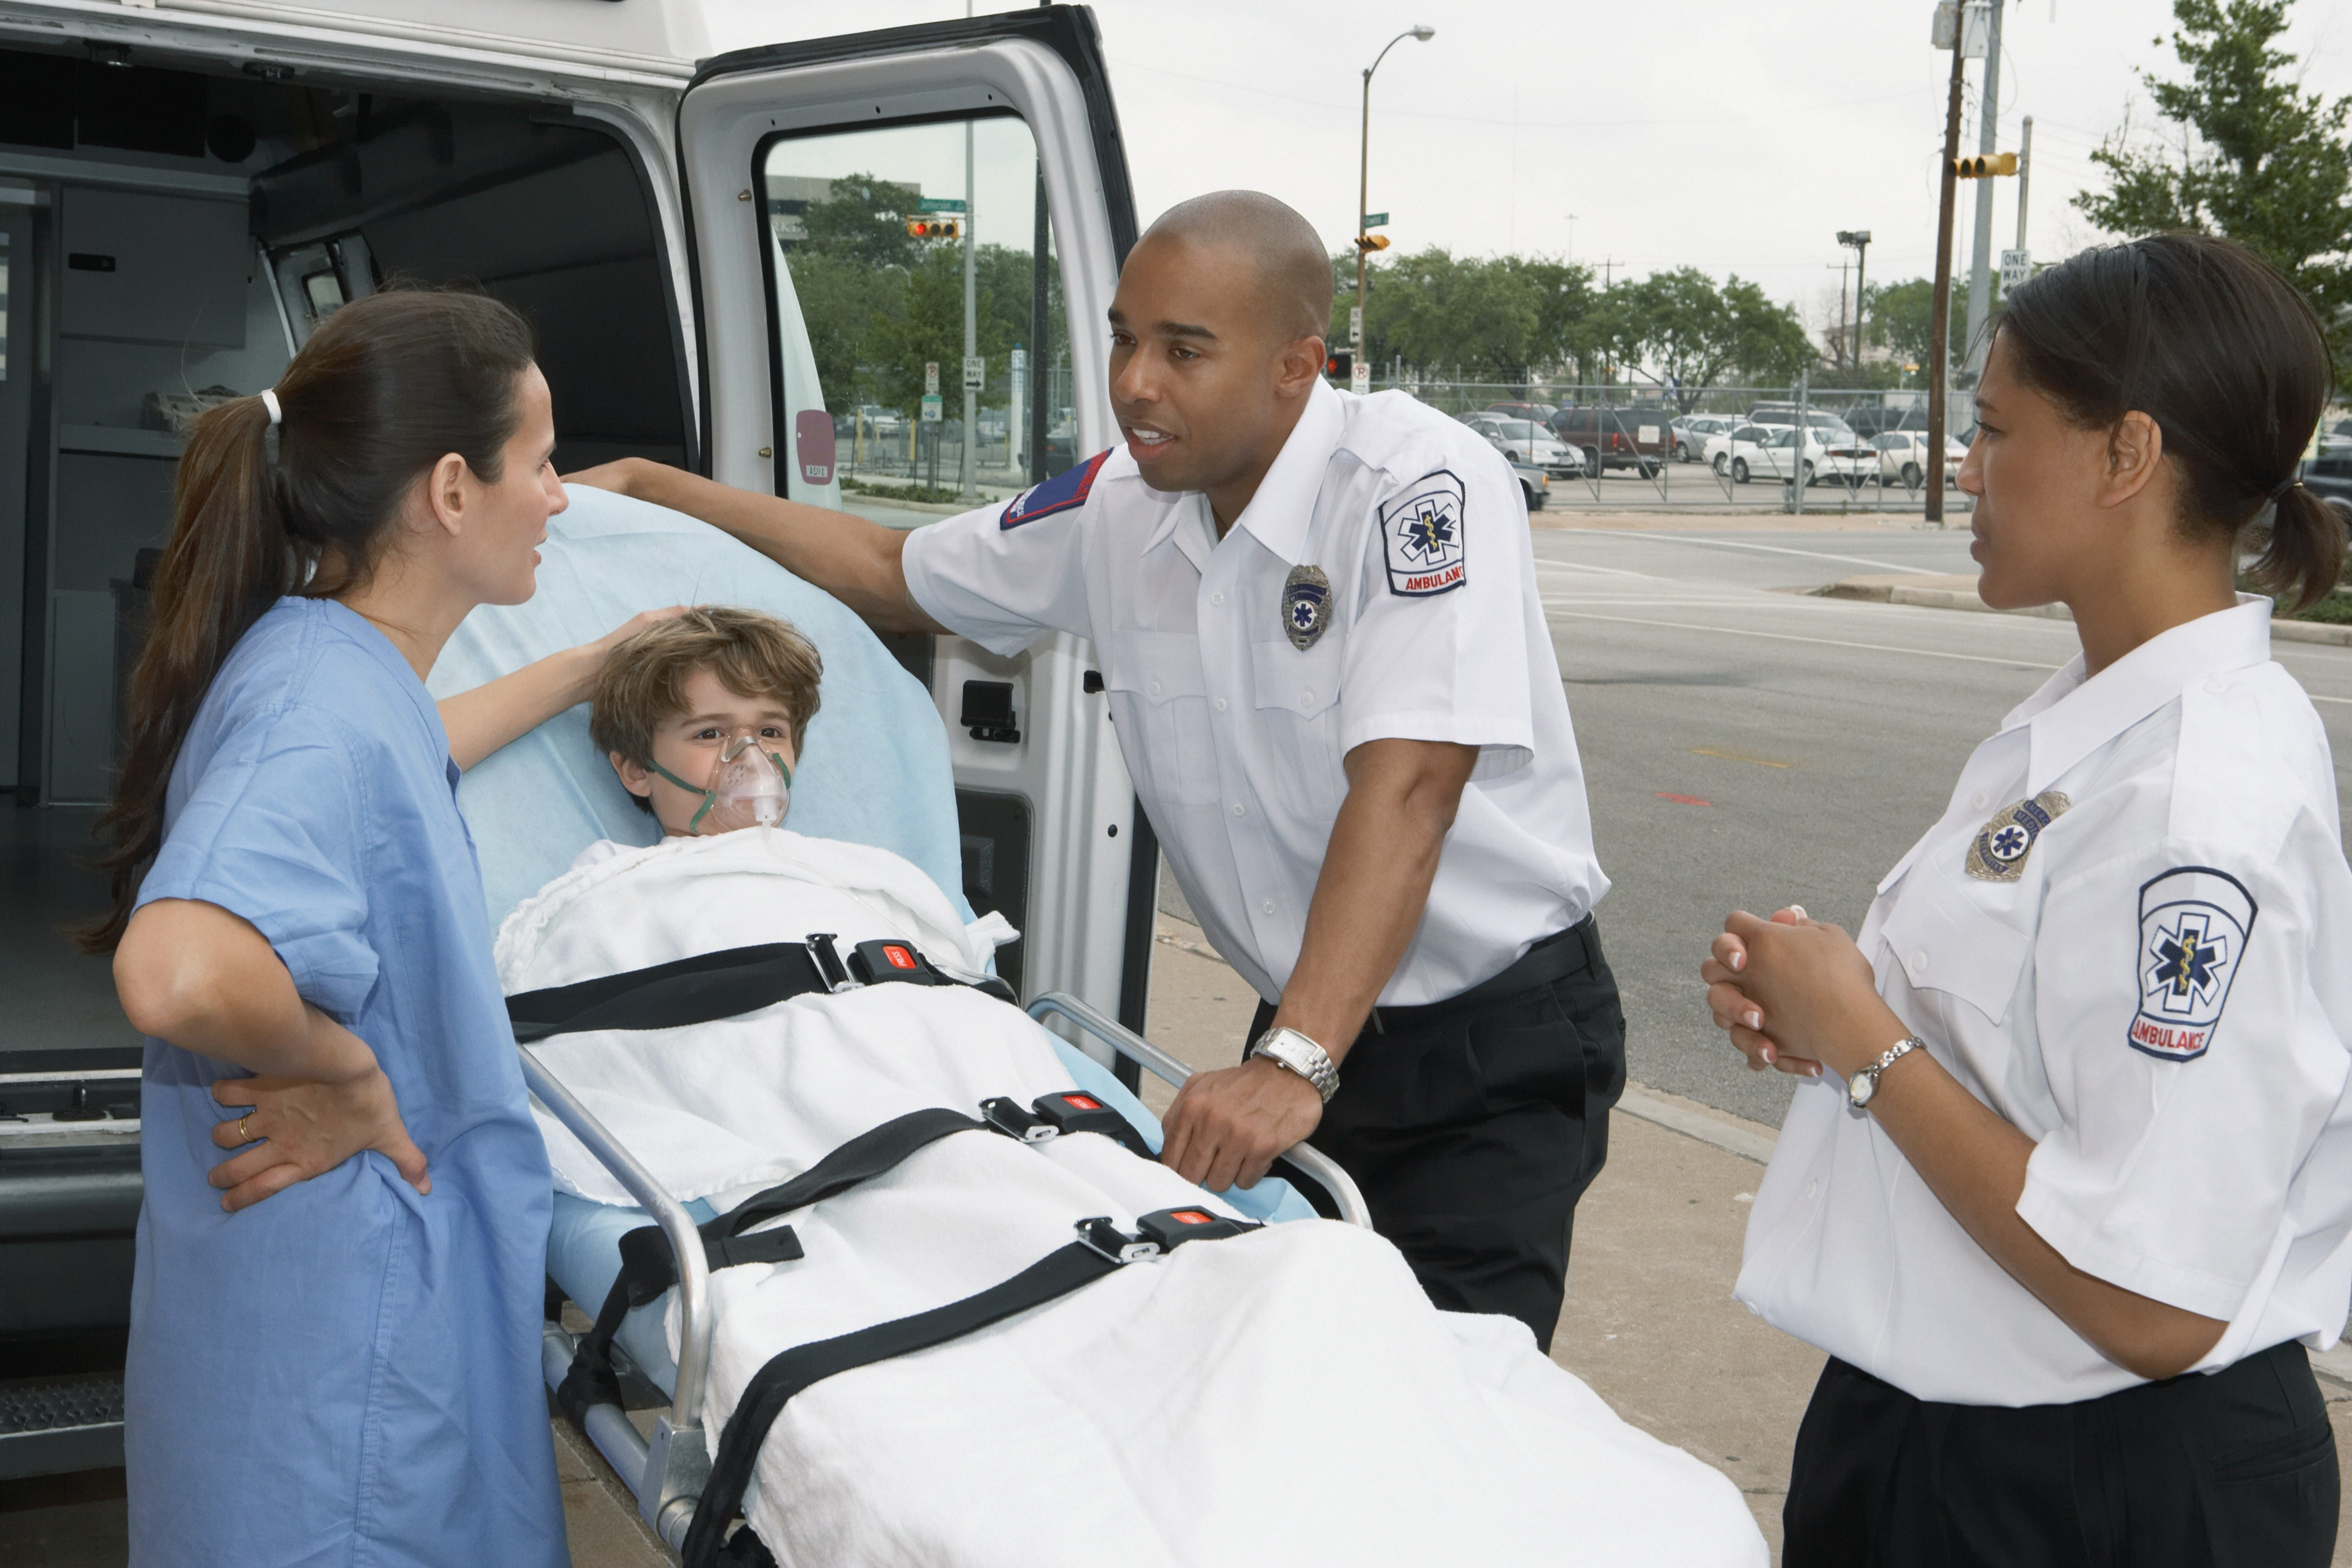 EMS Advice for Patient Handovers